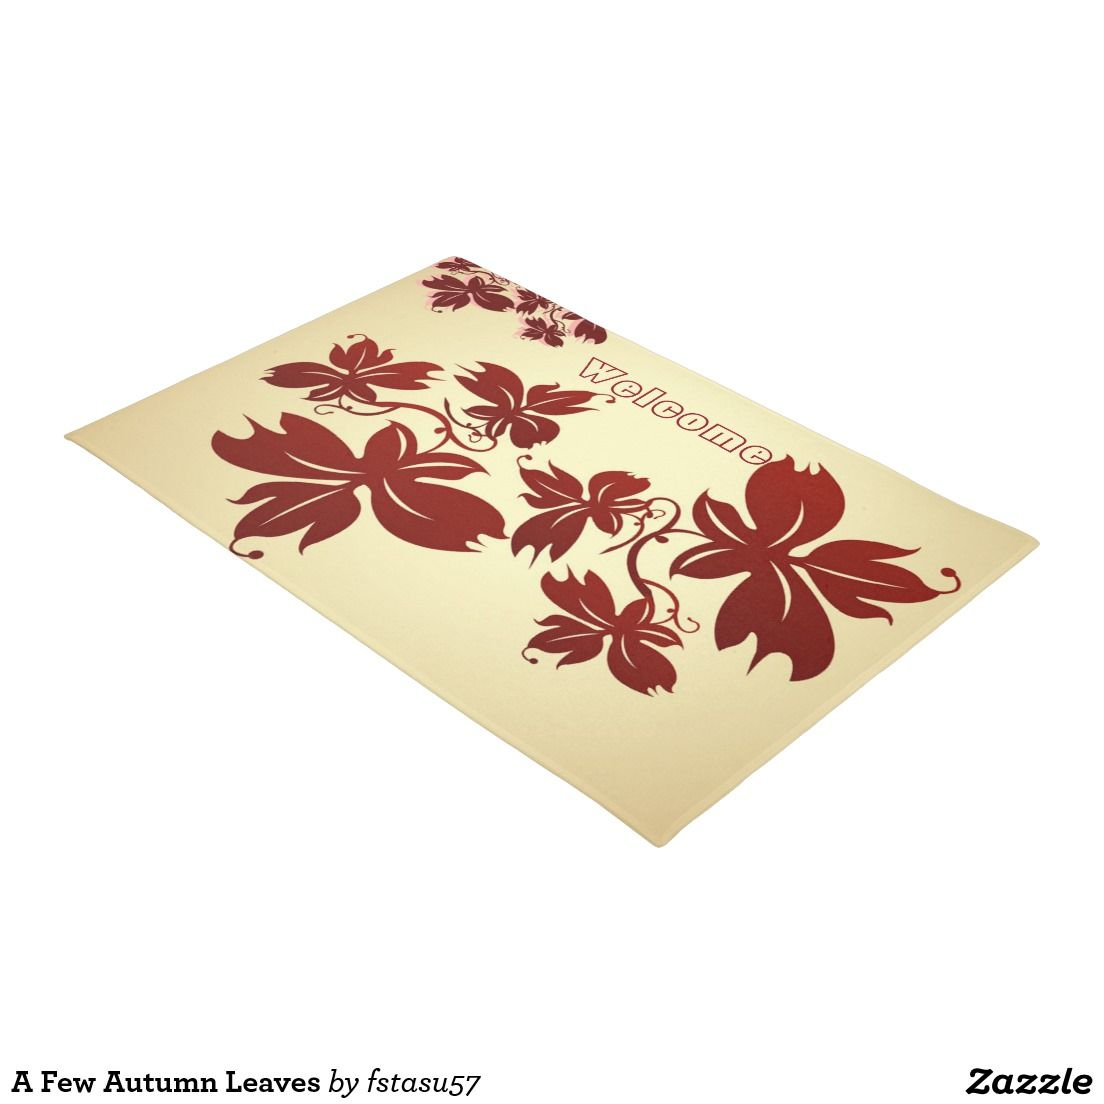 A few autumn leaves doormat doormat and leaves a few autumn leaves doormat kristyandbryce Images